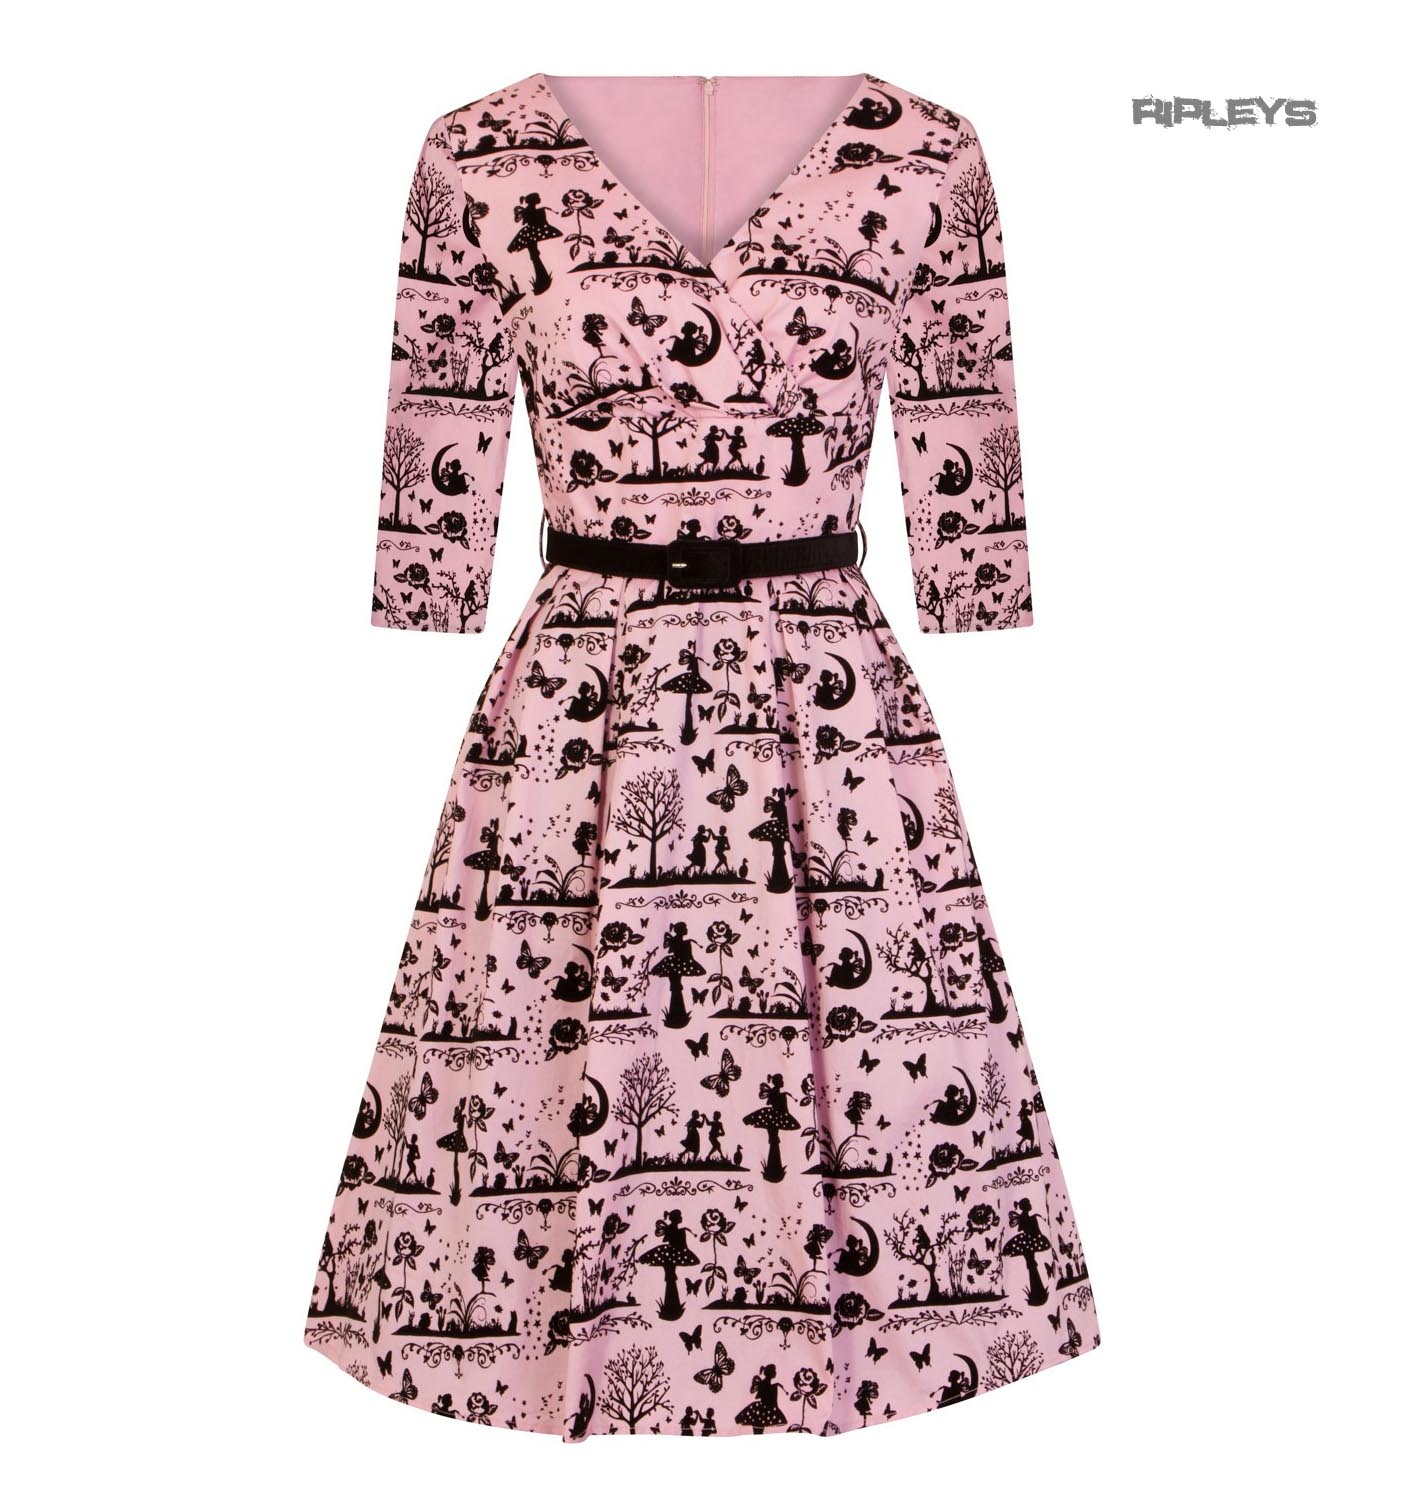 Hell-Bunny-40s-50s-Pin-Up-Dress-Fairy-Butterfly-ANDERSON-Black-Pink-All-Sizes thumbnail 14